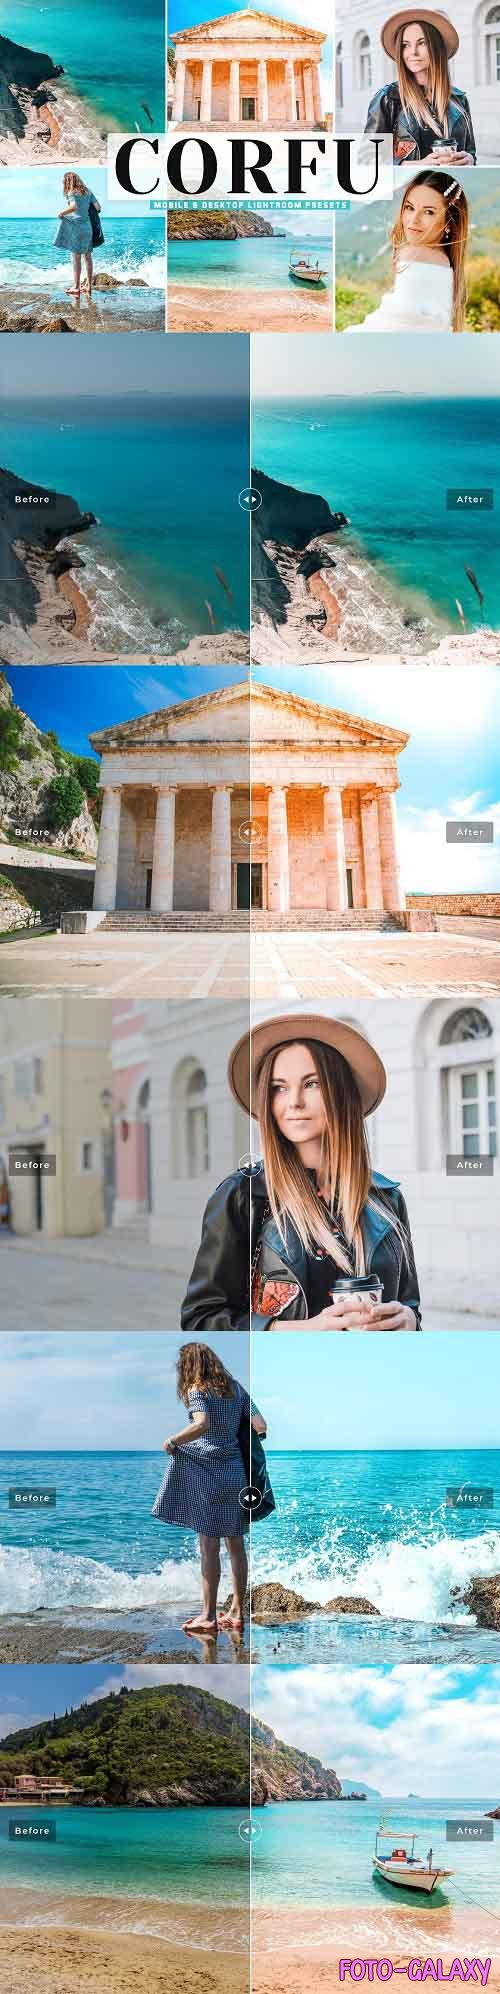 Corfu Pro Lightroom Presets - 5772671 - Mobile & Desktop